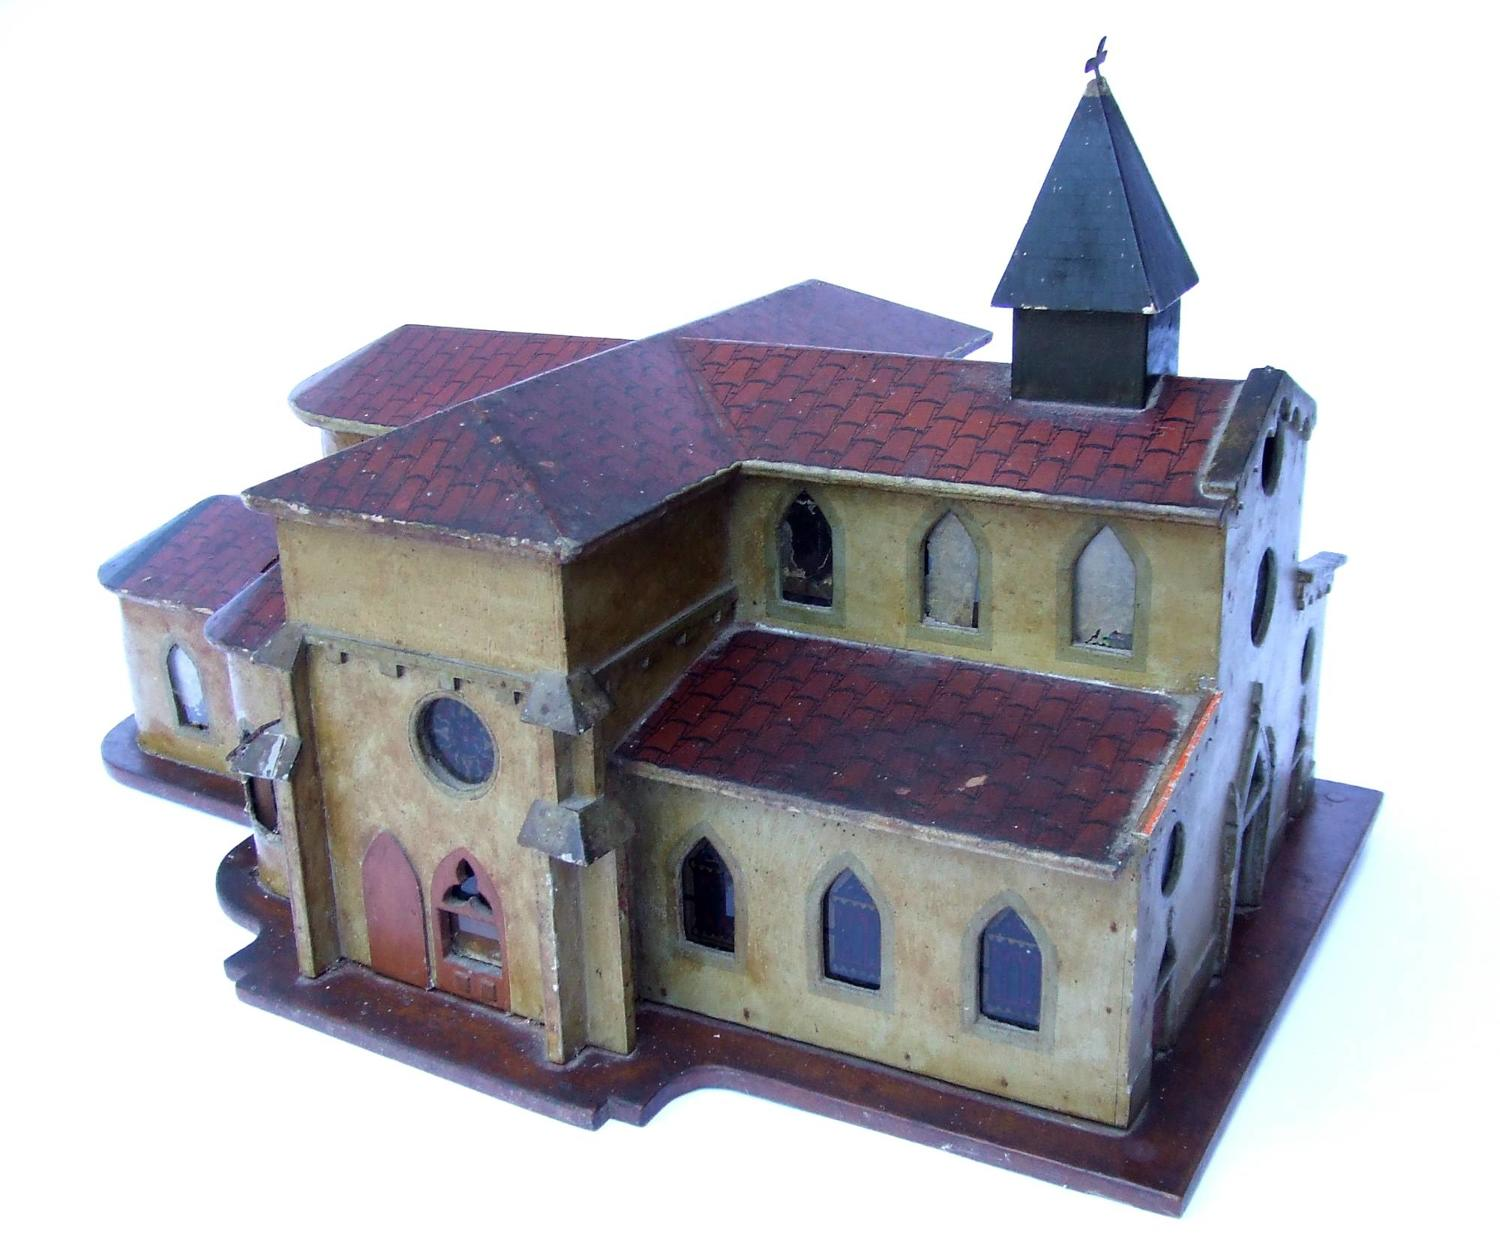 French Folk Art Model of a Church